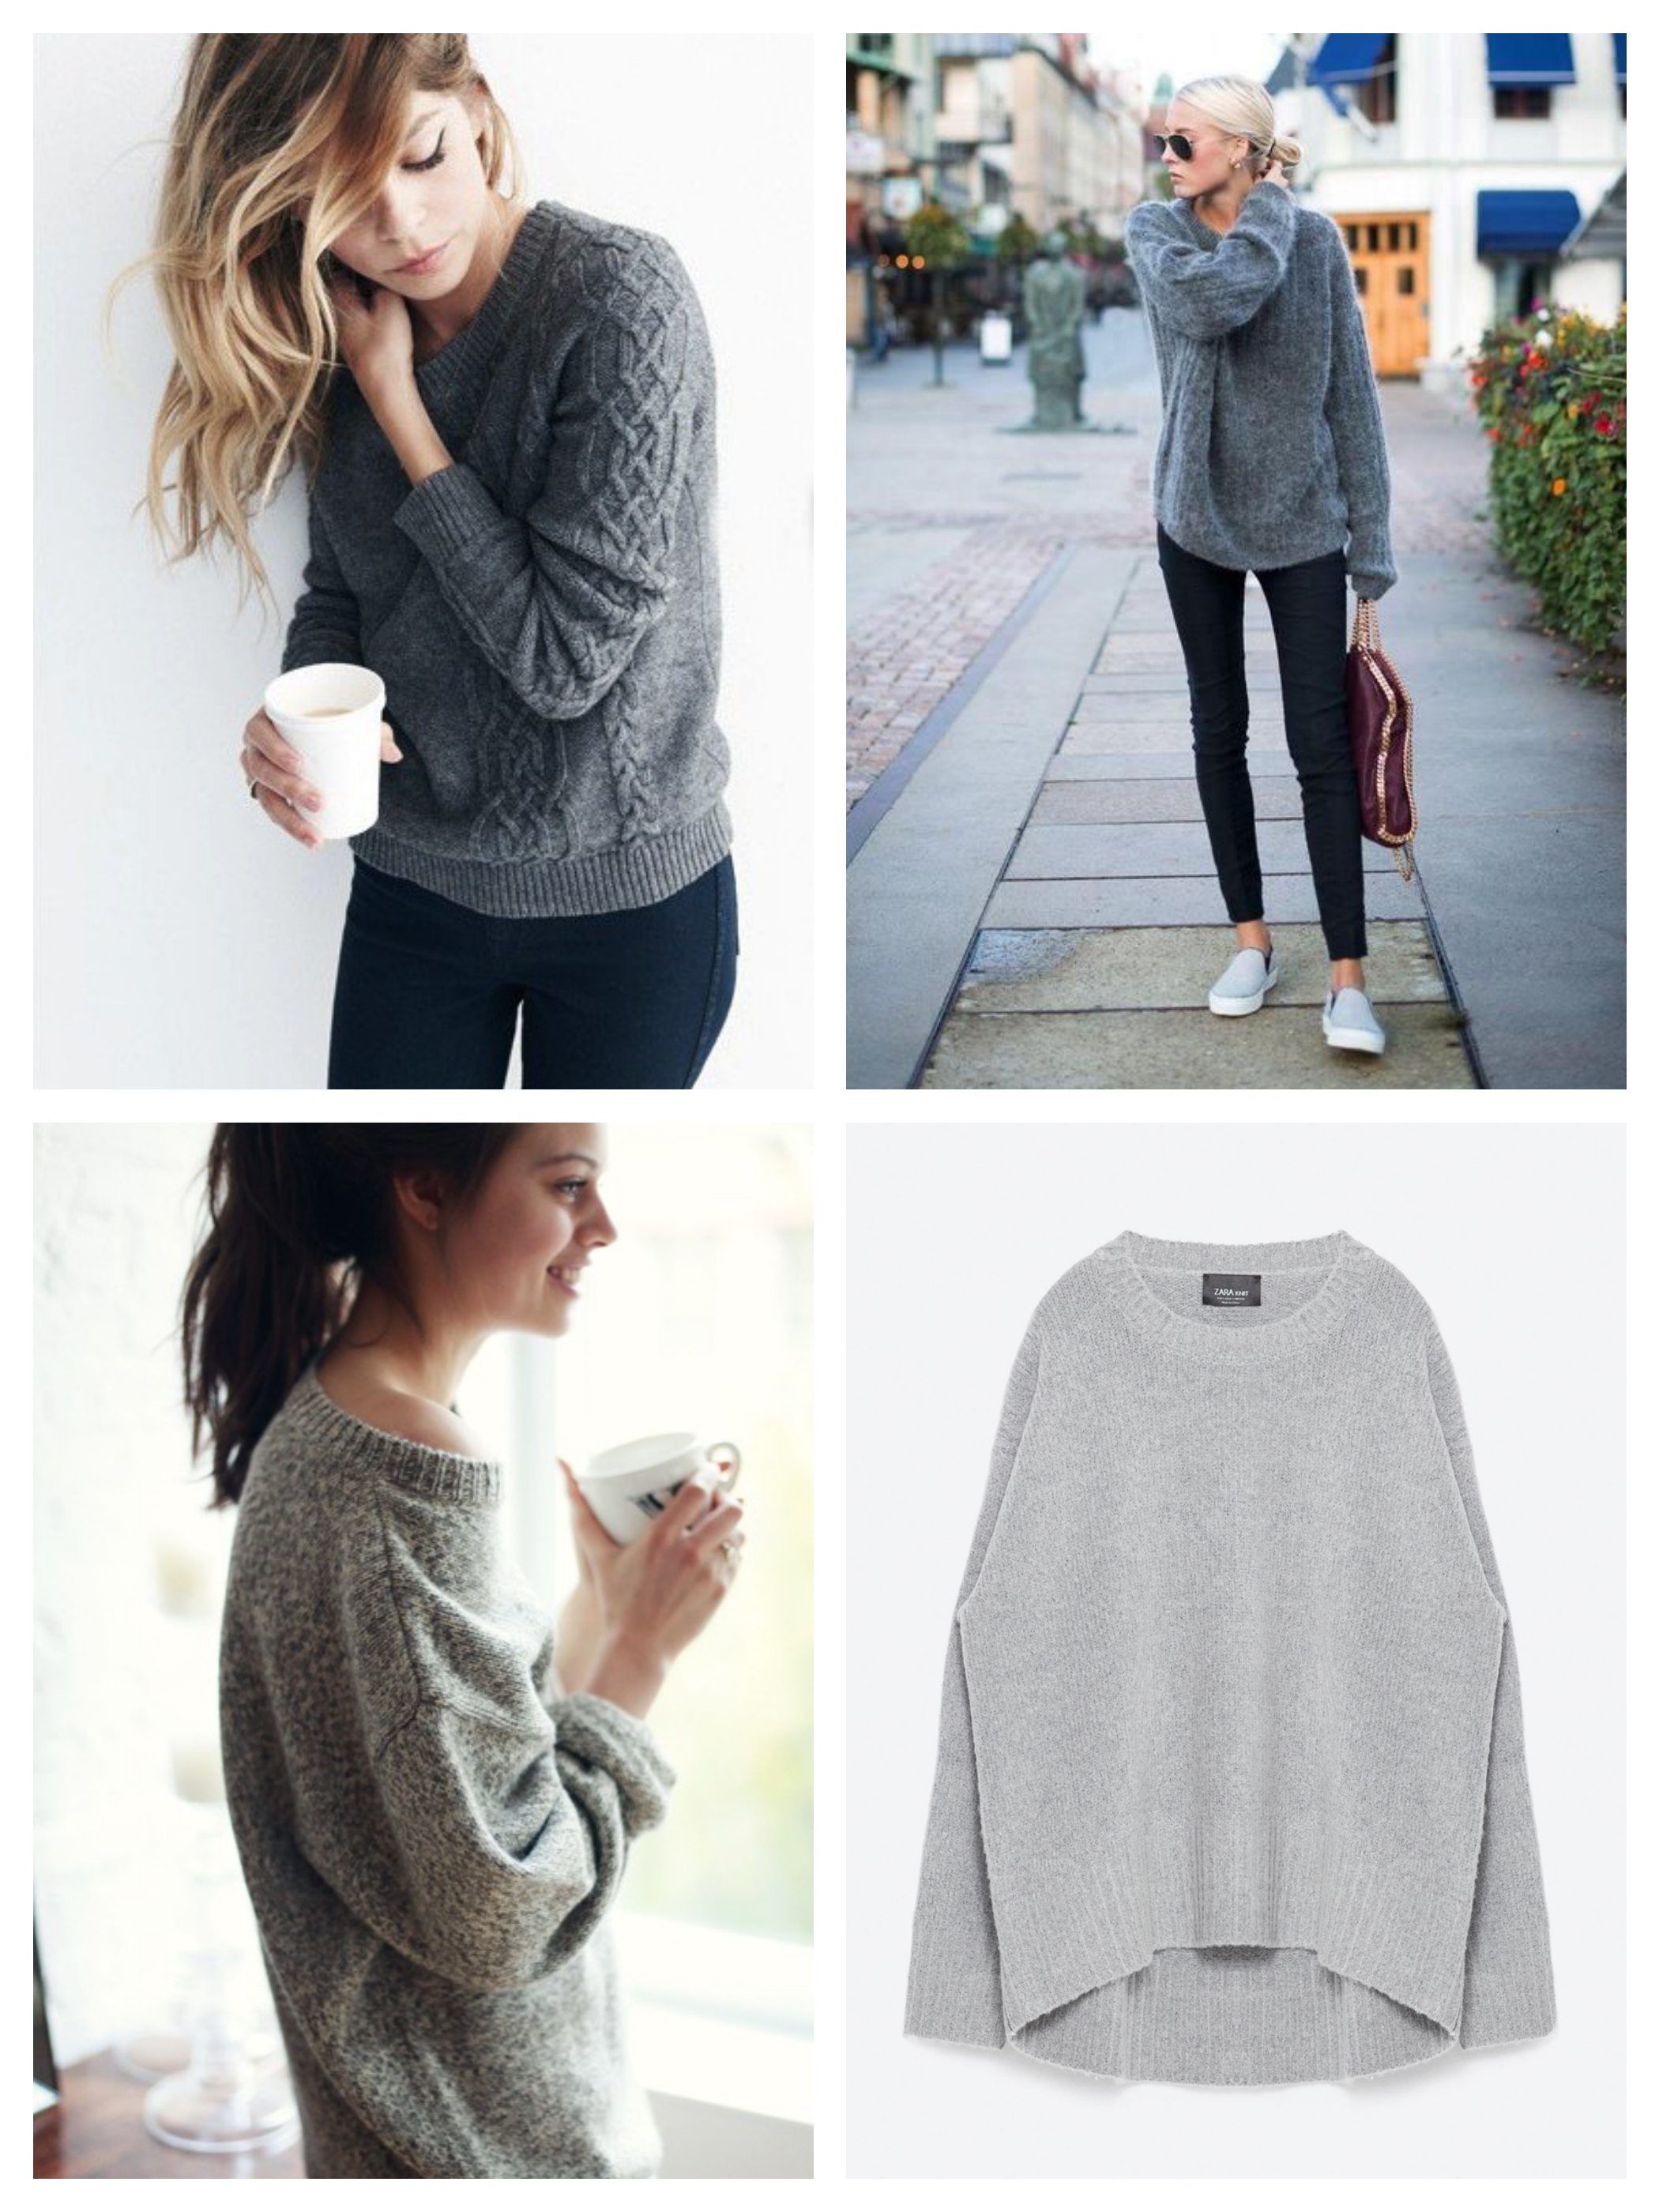 oversized sweaterZara_Fotor_Collage